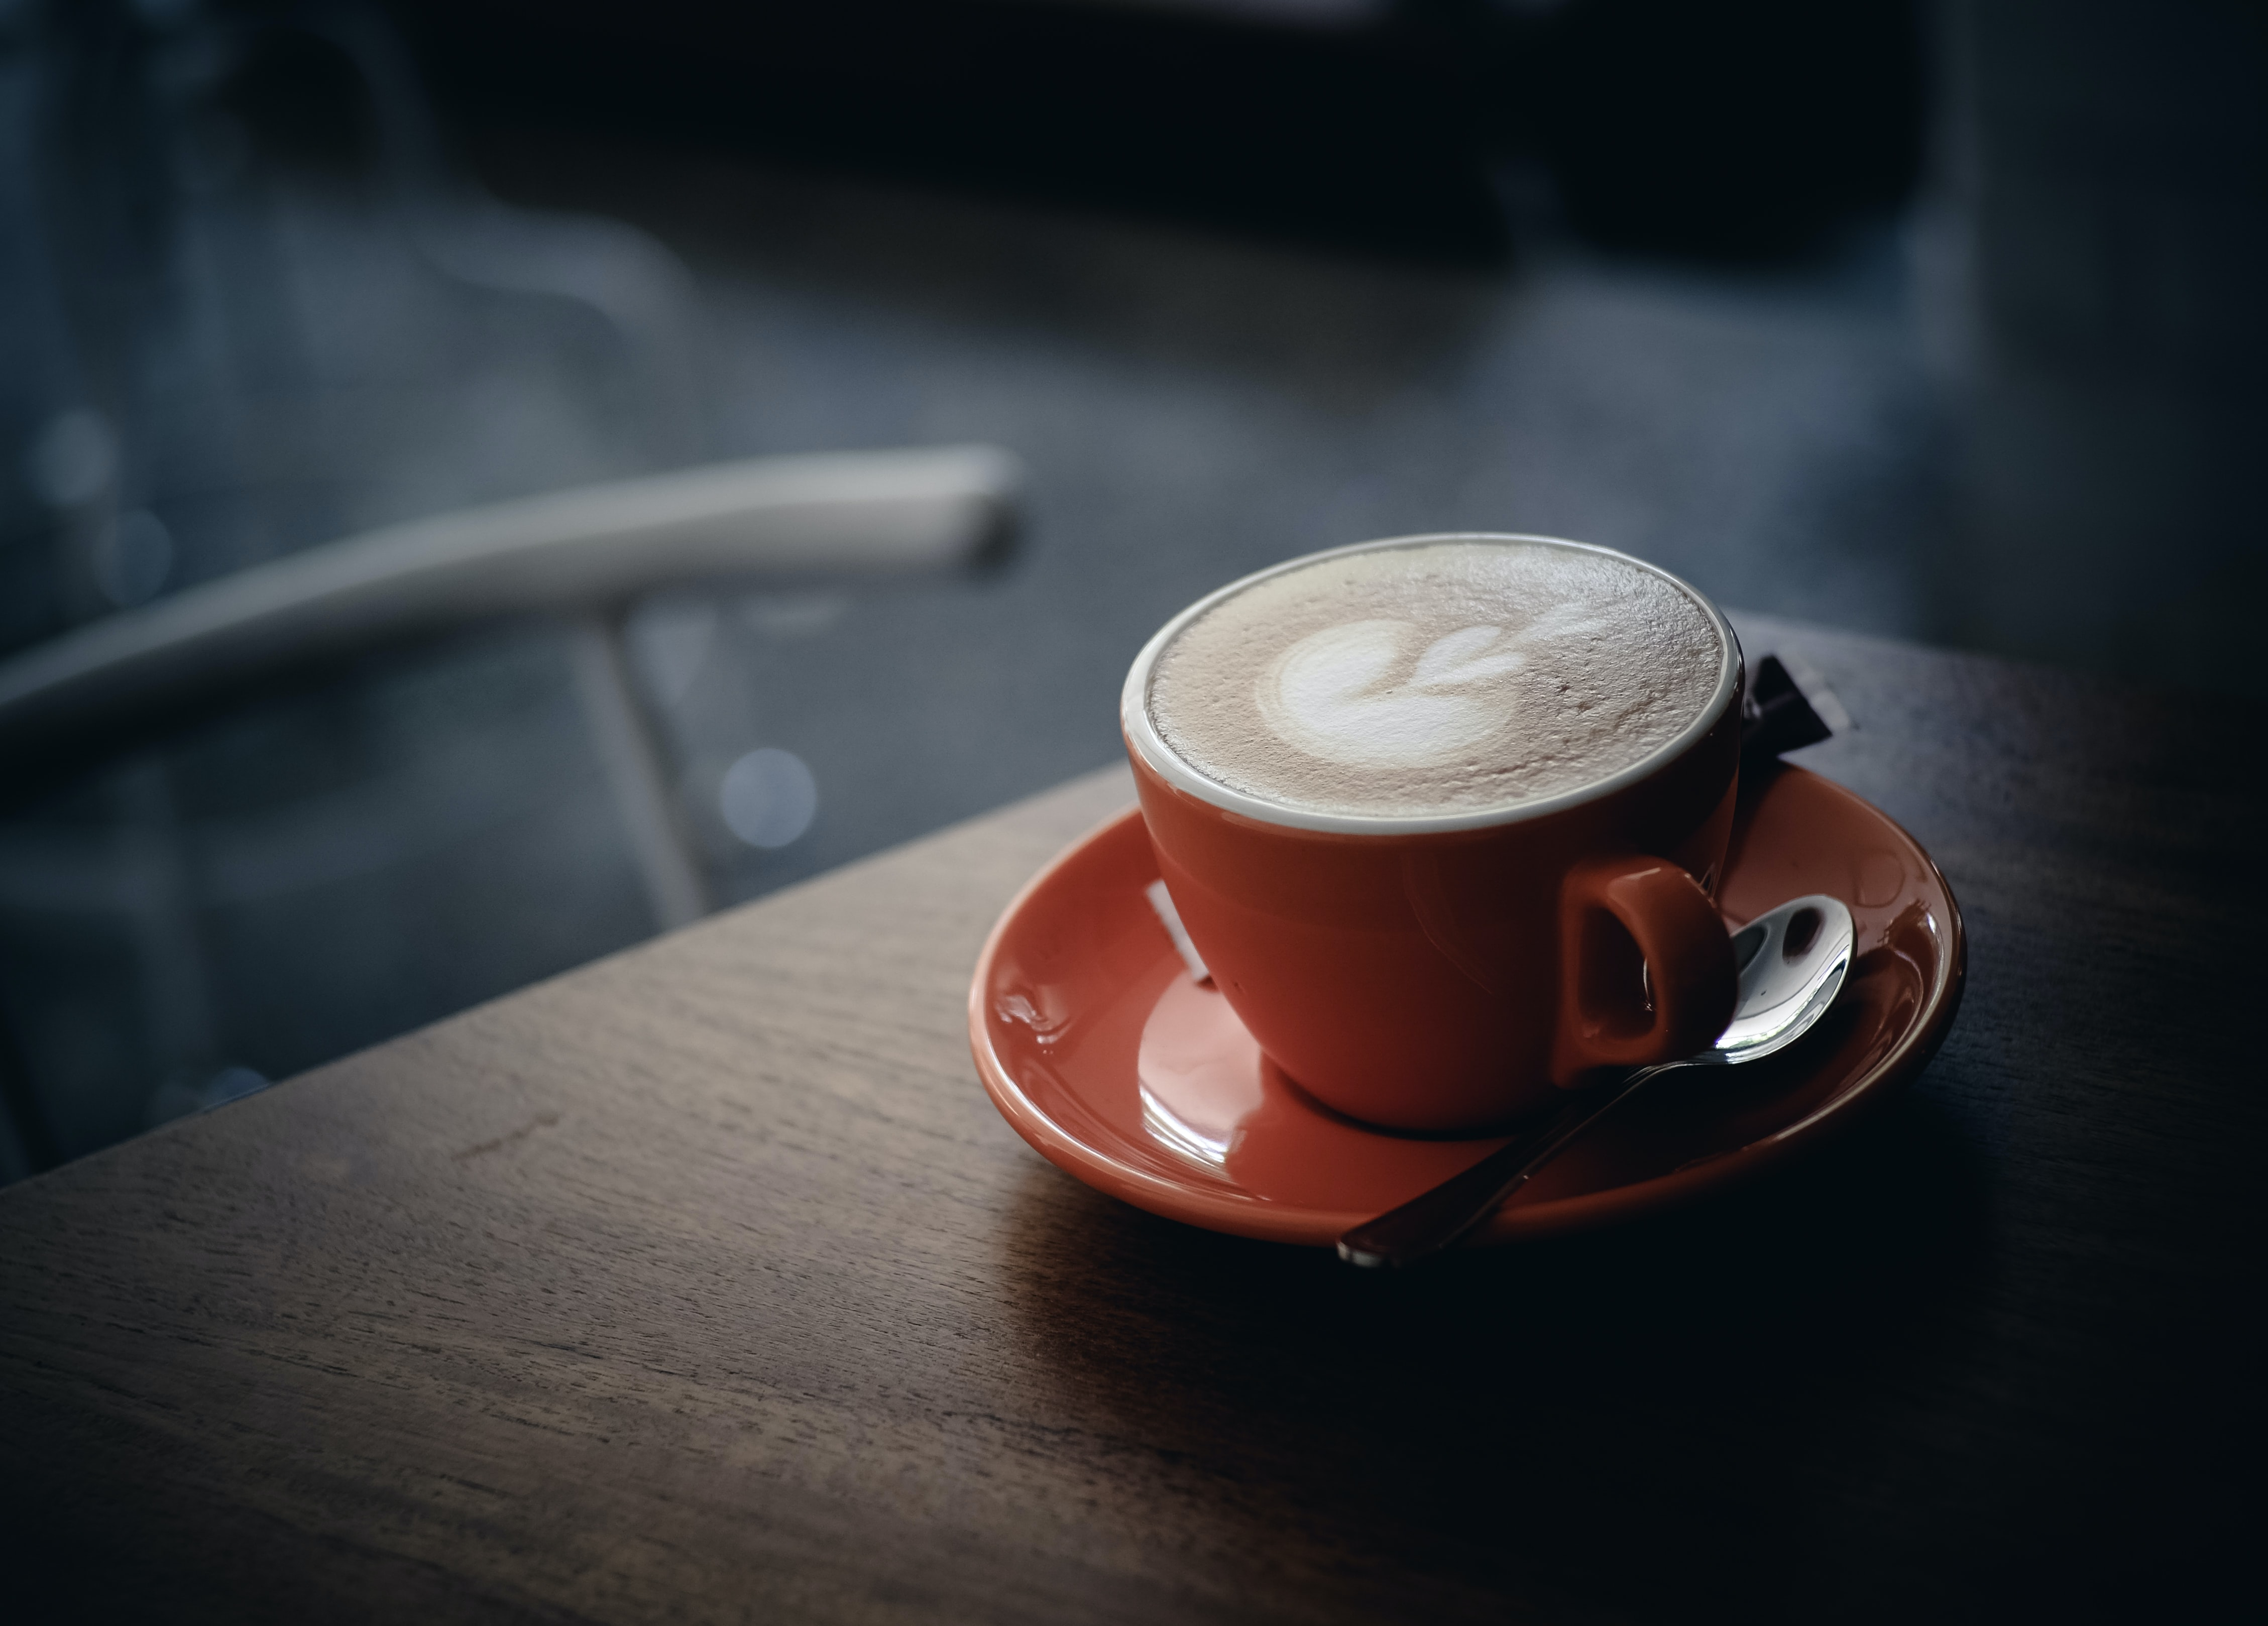 A cup of coffee in an orange mug on an orange saucer with latte art in Bandung